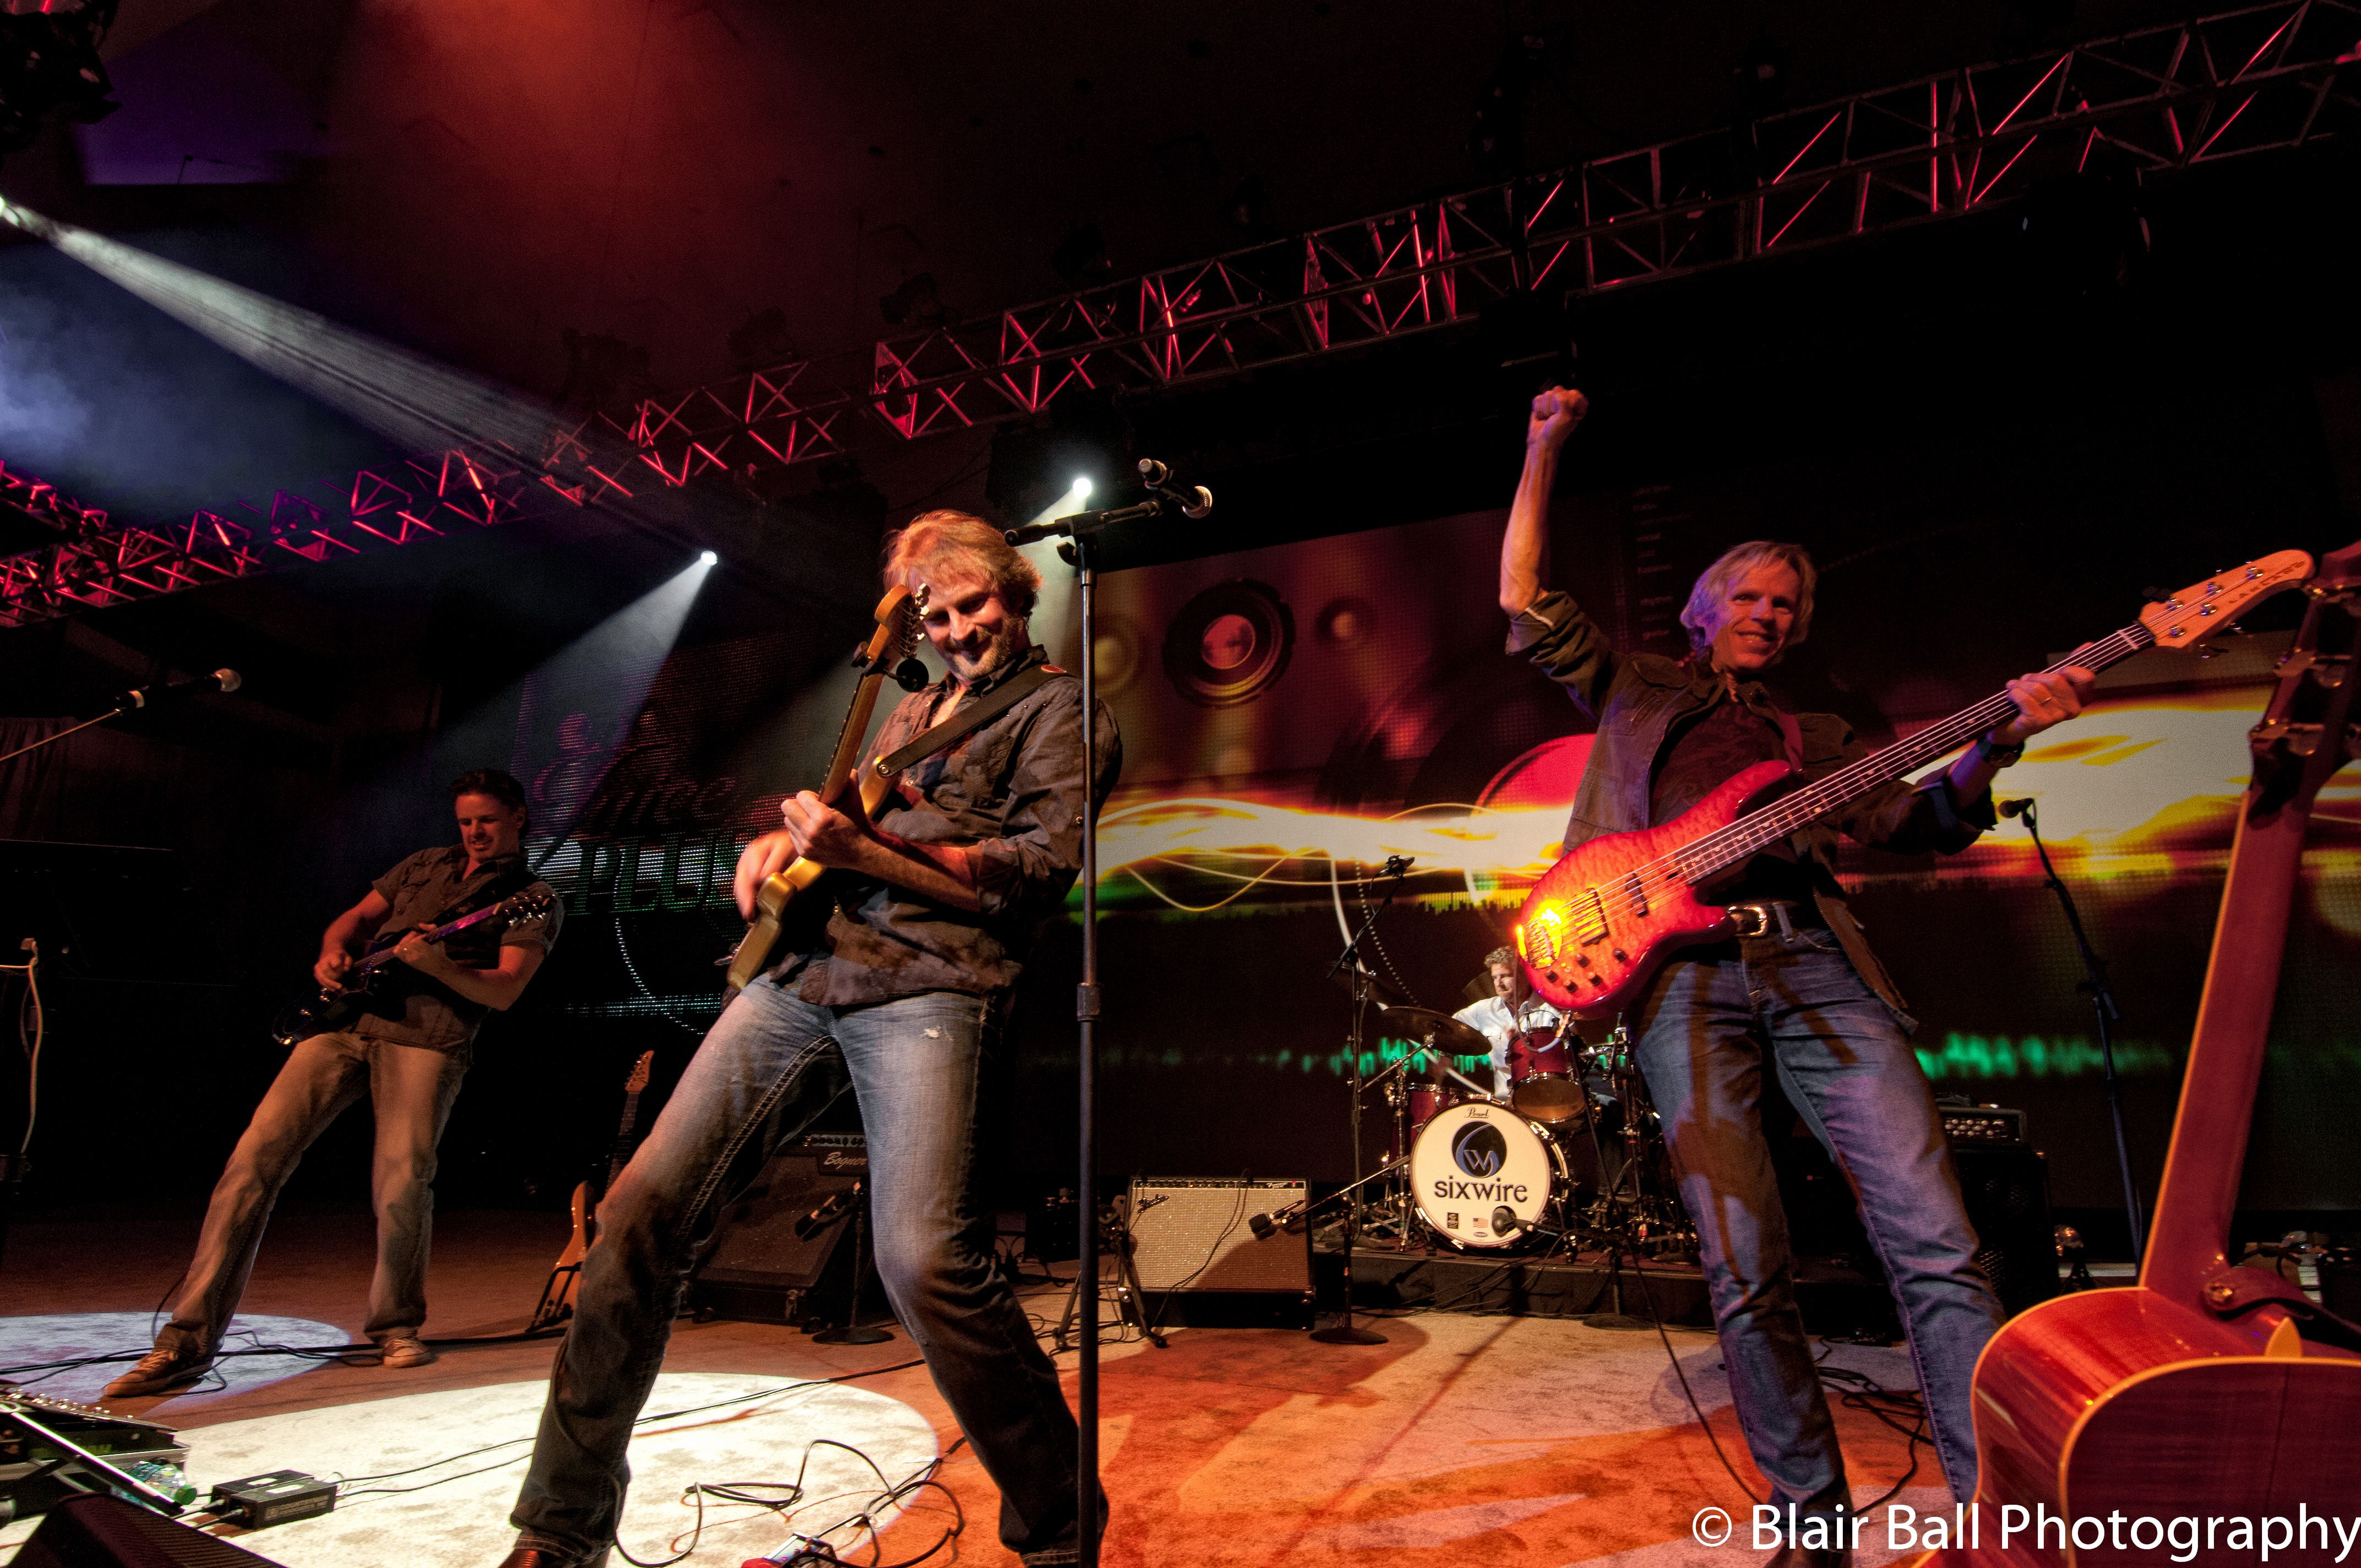 Andy Childs and Sixwire Band | Bands | Pinterest | Movie